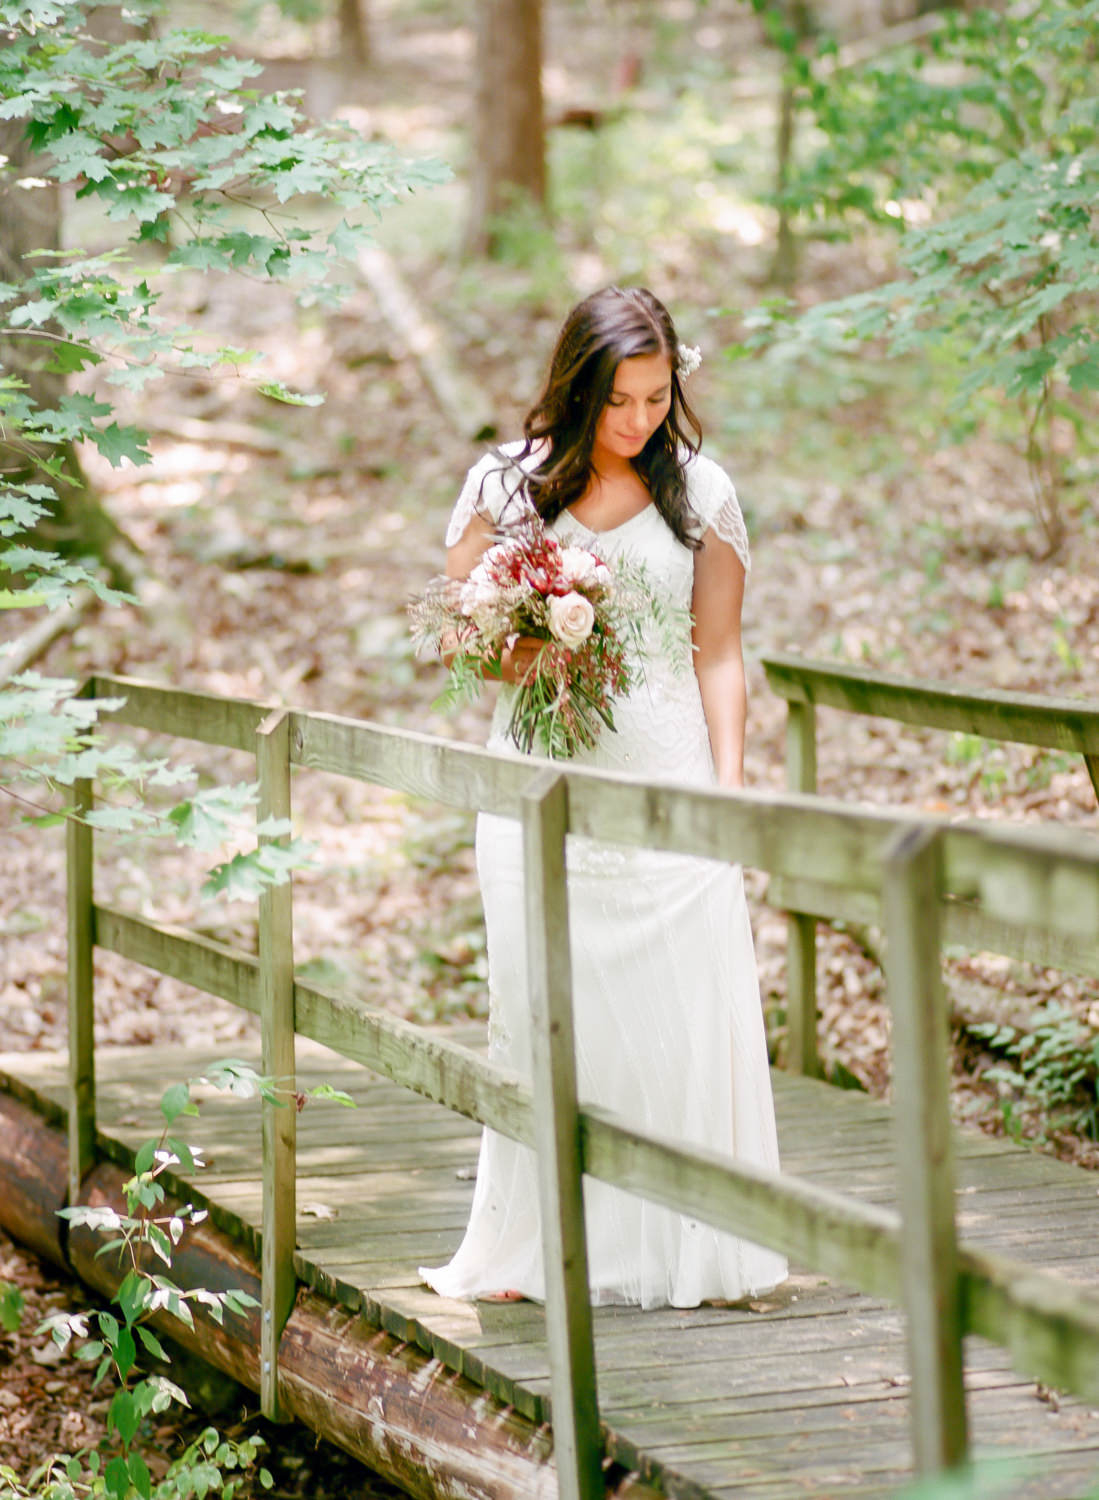 bride in woods on bridge in beaded gown and holding rustic red bouquet, Erica Robnett Photography